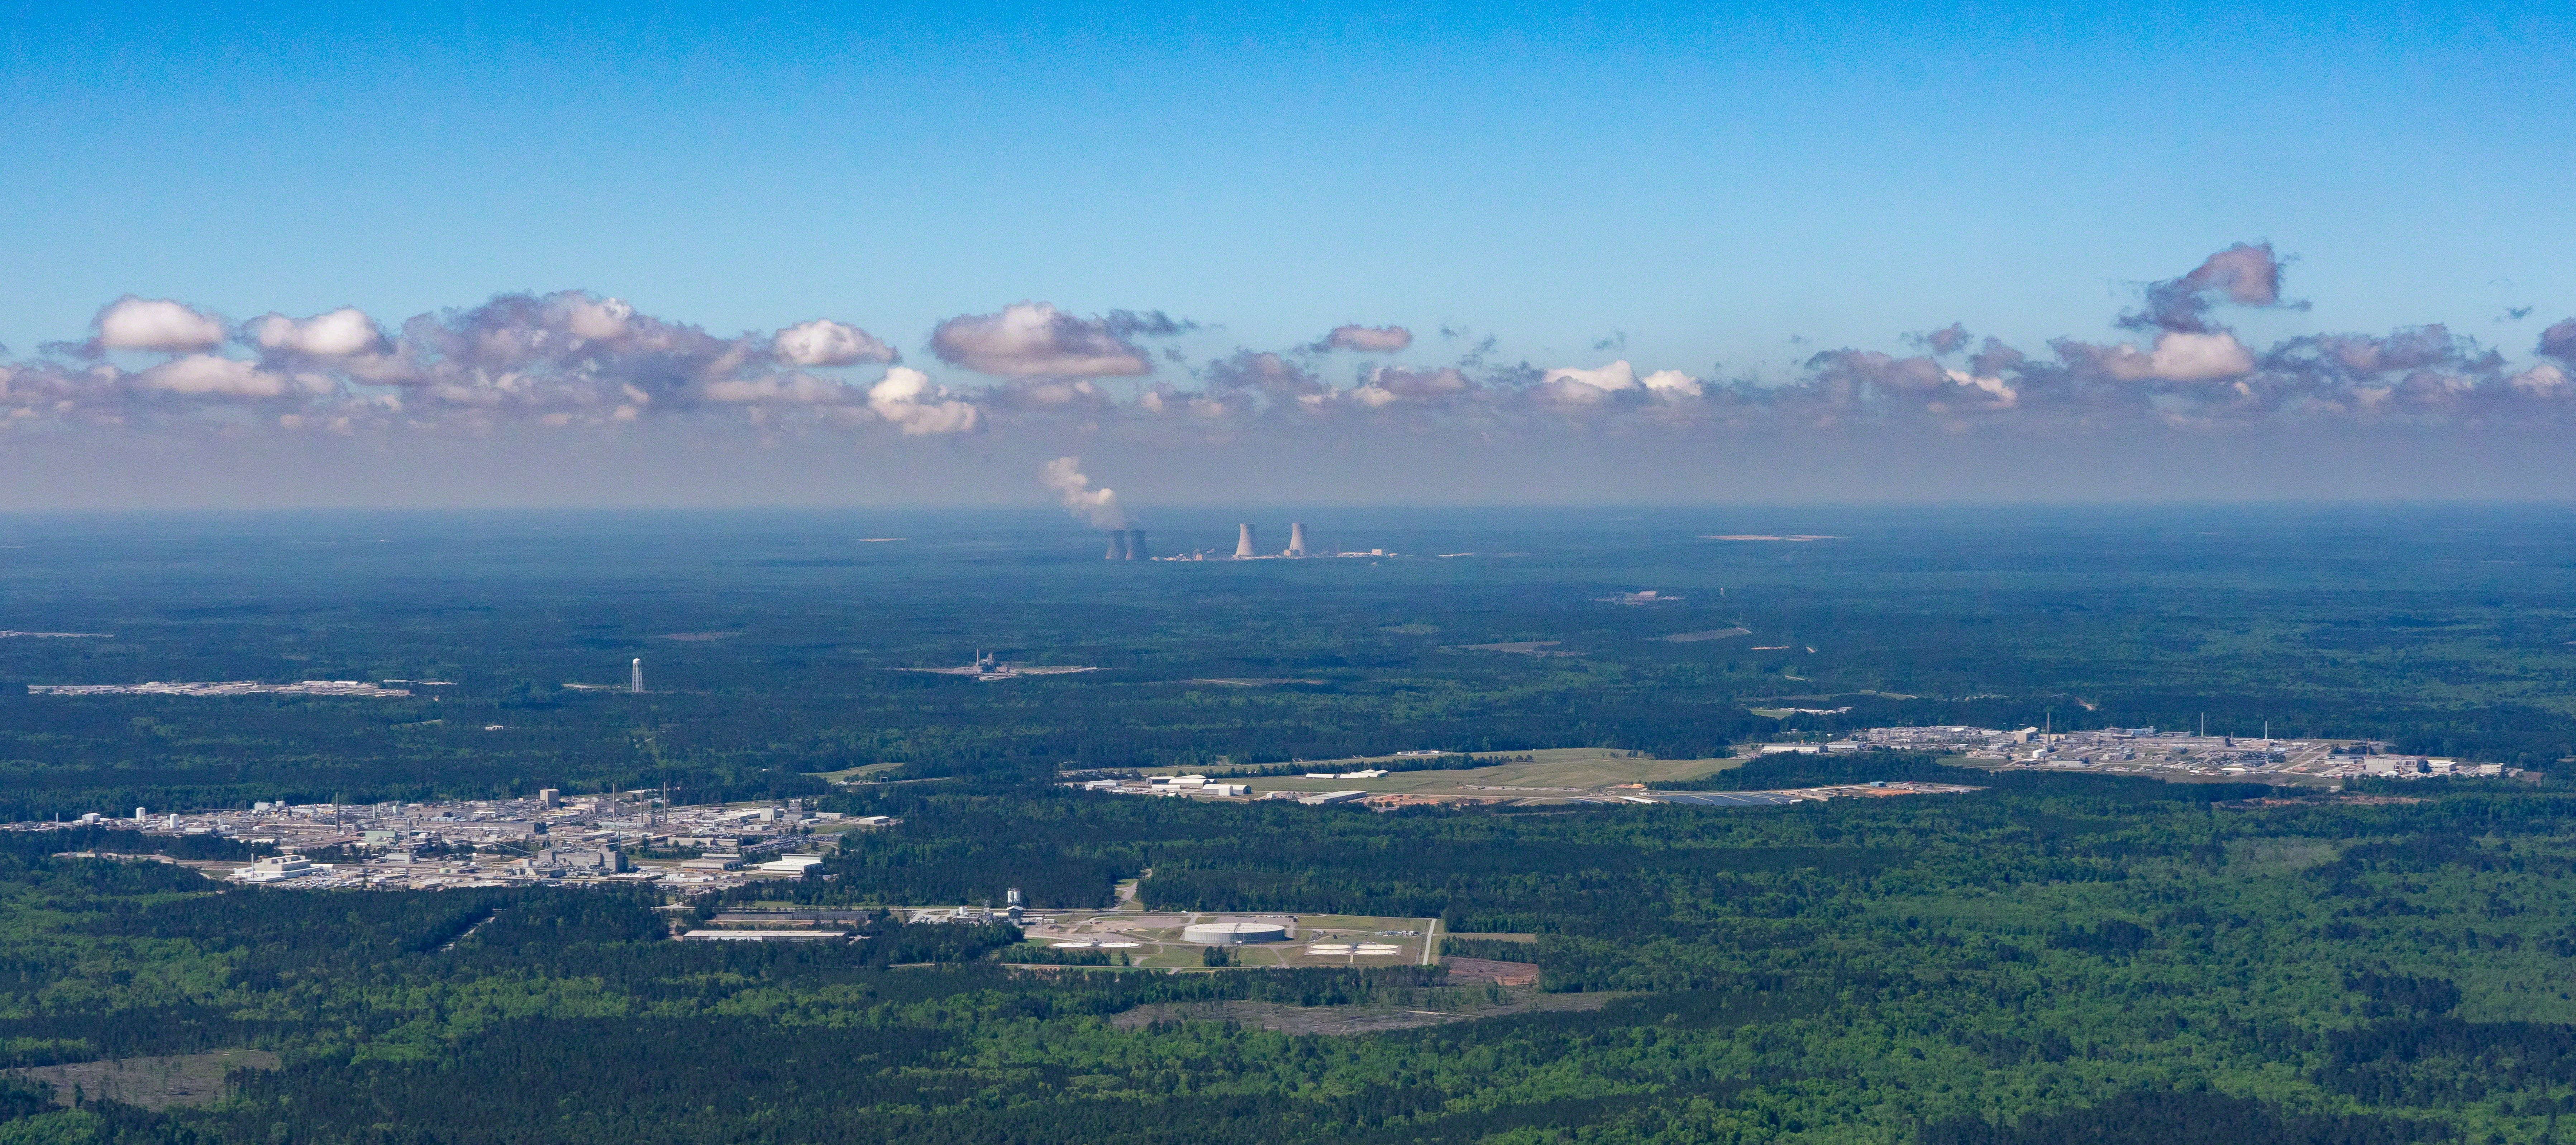 Aiken's Nuclear Neighborhood: The cancelled MOX plant (right), DOE's Savannah River Site (left) and Southern Company's troubled Vogtle nuclear power plant expansion (rear) all sit close by near Aiken, South Carolina.